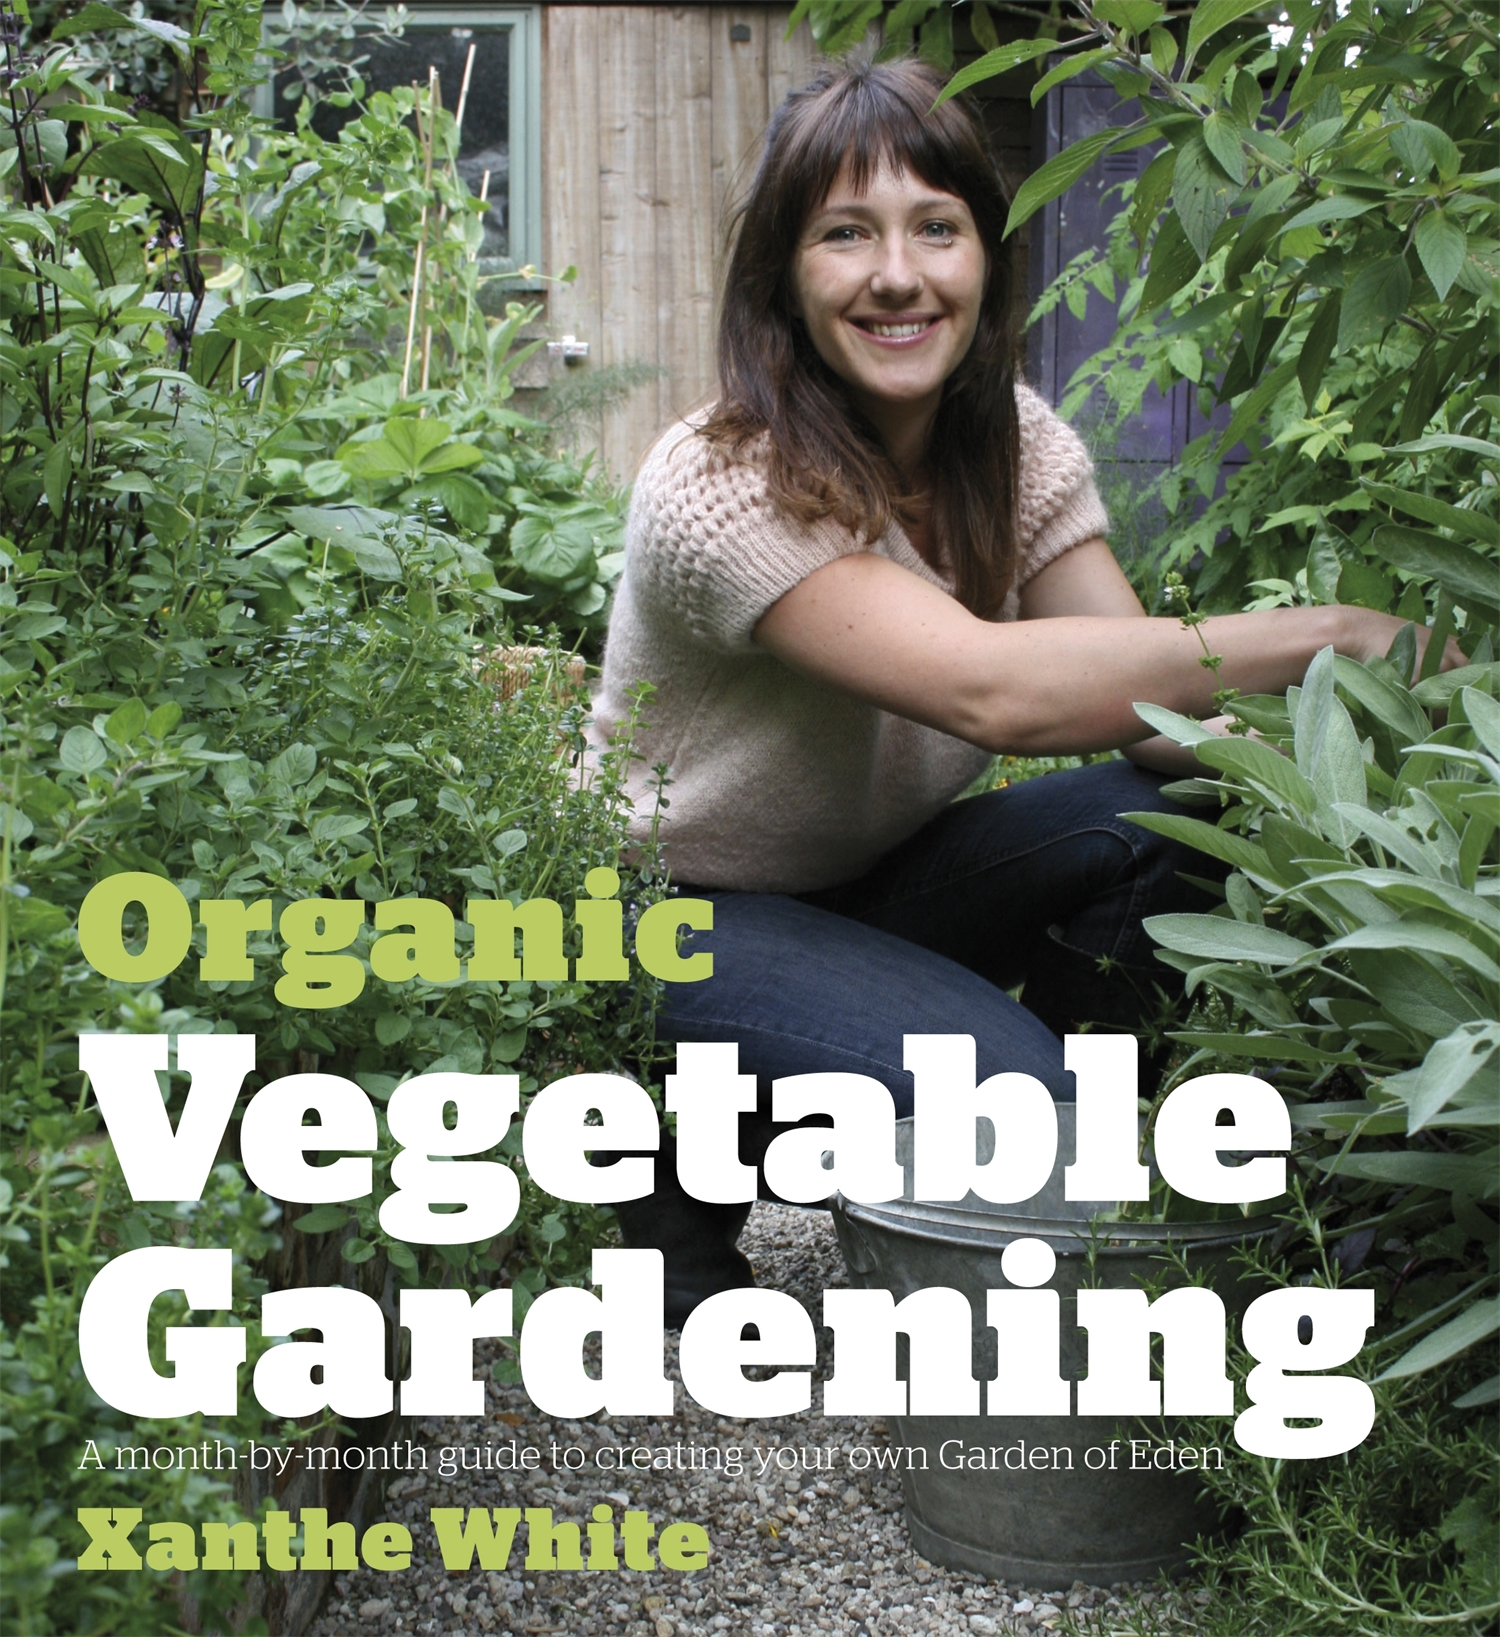 Organic Vegetable Gardening  Vegetable gardening is big again. Here's a book that takes readers by the hand and shows them how to go from backyard bombsite to organic Garden of Eden in one year. Author Xanthe White, New Zealand landscape-design star, documents a year in the garden she built from scratch in a rundown inner-city backyard, inspiring readers to realise that they can do it too. With a chapter for each month of the year, Xanthe's monthly diary inspires and confides, and her guides to sowing, planting, pests and diseases, making compost, mulching and more make it so easy for beginners to follow and get fabulous results and great crops.  There's plenty for experienced gardeners here, too. Xanthe's tips, techniques and infectious enthusiasm will get even the most seasoned gardeners wanting to try some new ideas. Most of all, she demystifies organics and makes it so easy to agree that this is the only way you should garden. Studded with great informational photographs, this book carves out new and unique territory that sets it apart from other gardening books. It is an inspirational and practical guide.  Random House NZ Godwit 2009